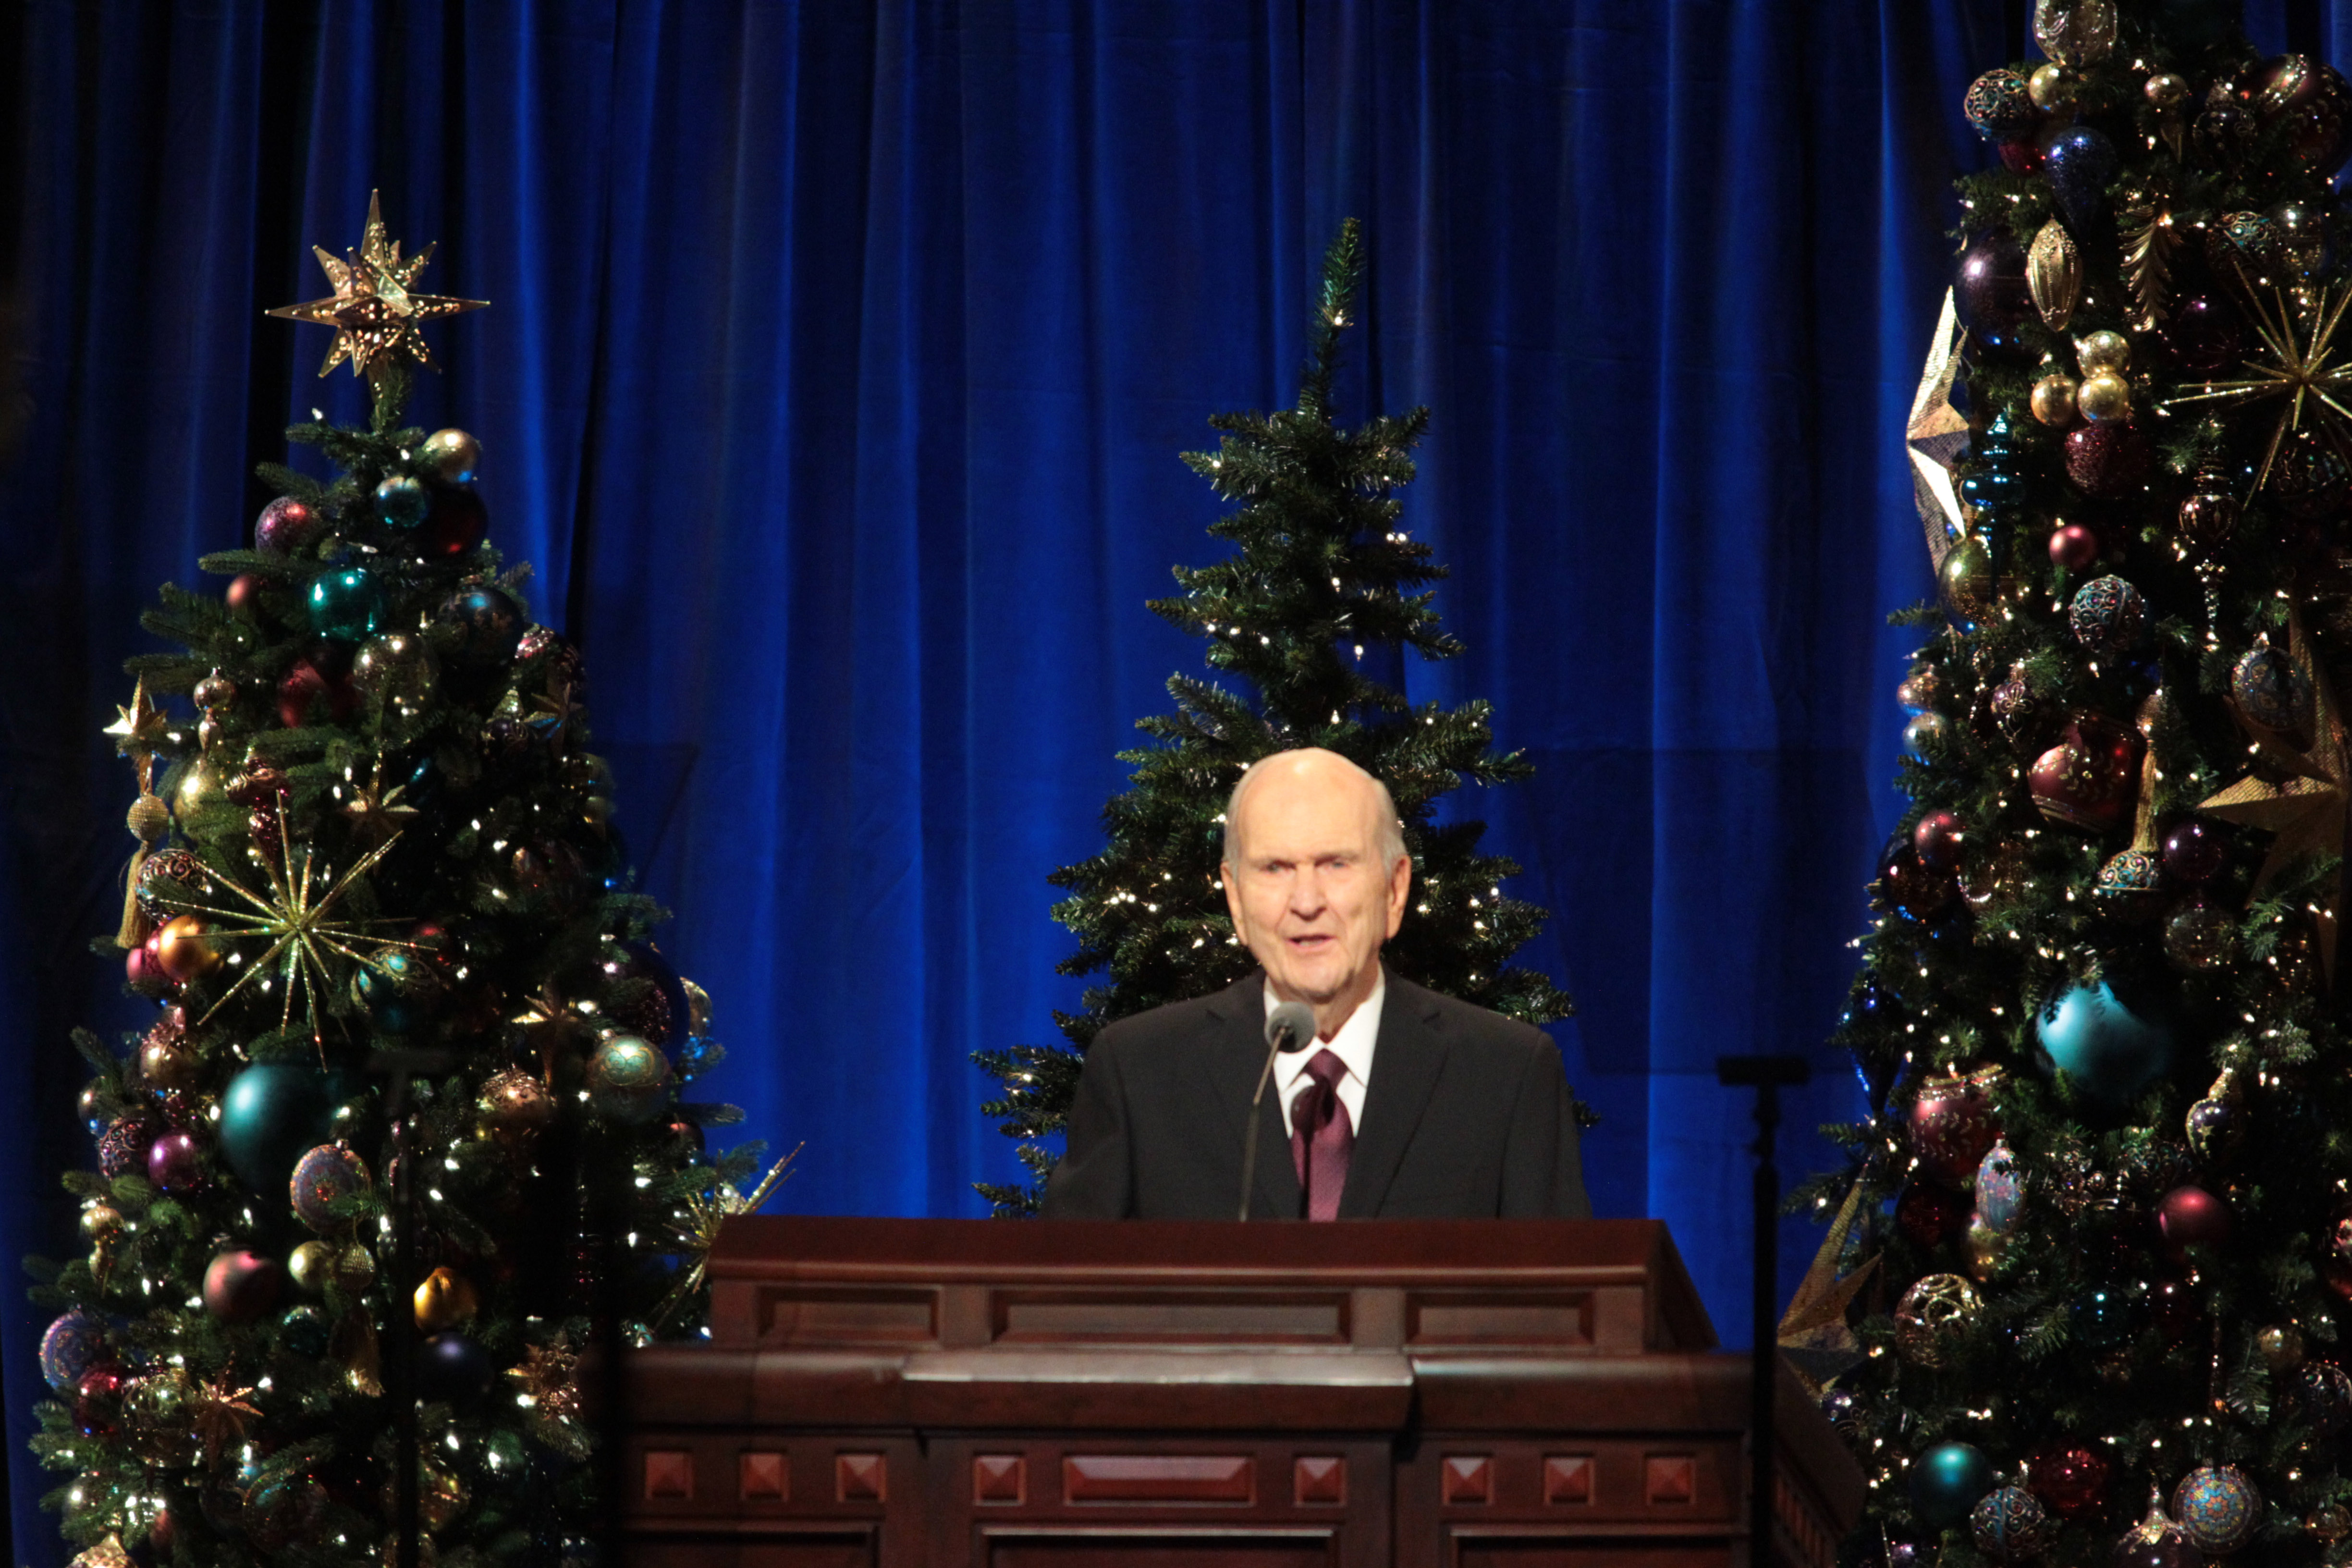 Lds.Org Christmas Devotional 2019 Gifts From the Savior Focus of First Presidency's Christmas Devotional